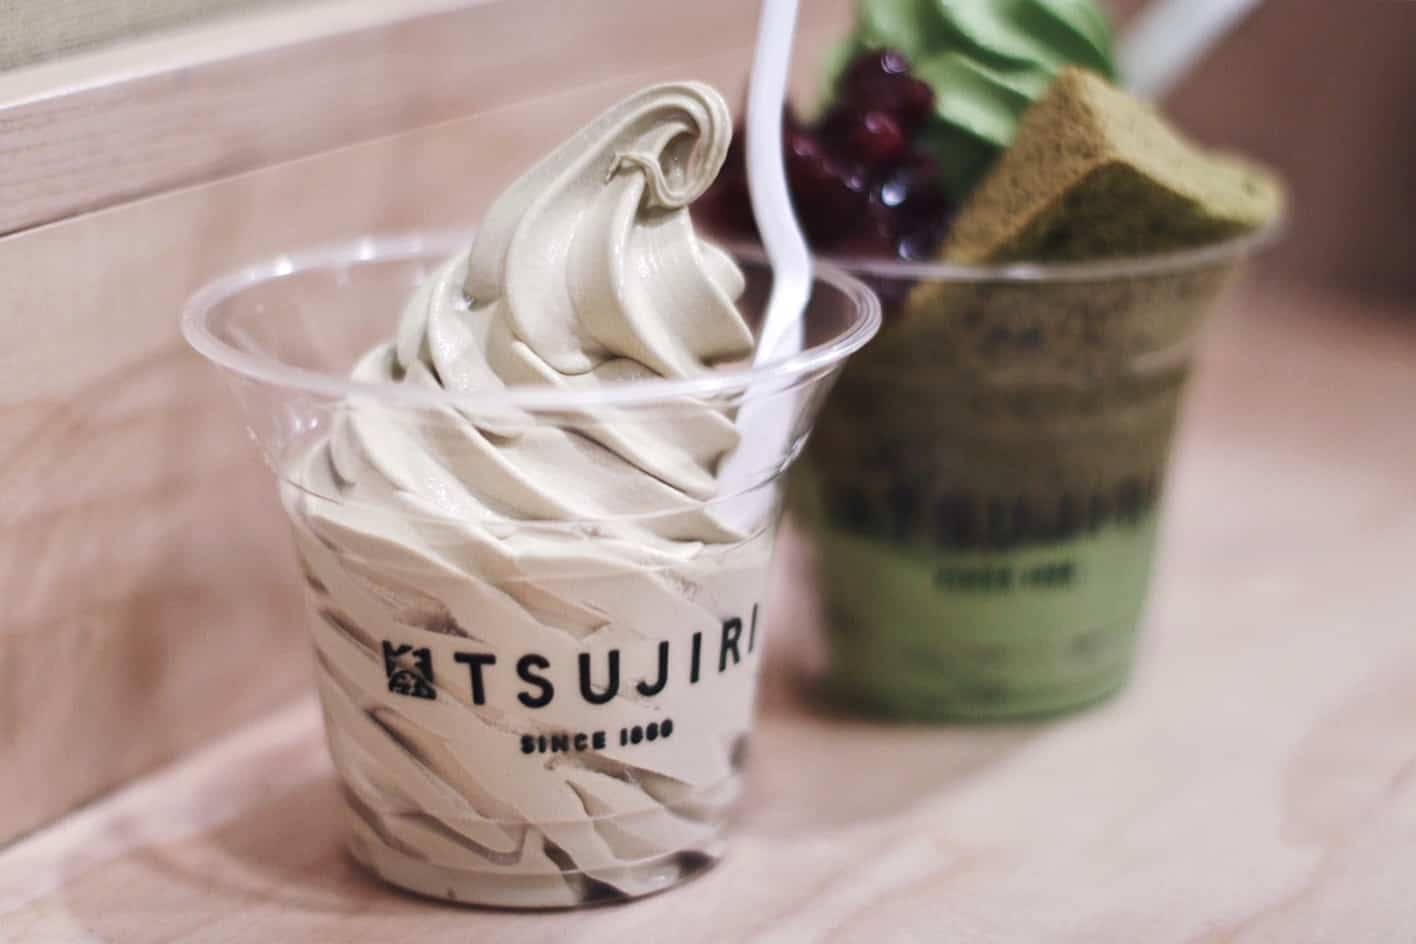 Best Toronto ice cream spots | top ice cream places in Toronto | where to get dessert in Toronto, Ontario, Canada | Toronto foodie travel guide | Diary of a Toronto Girl, a Canadian lifestyle blog